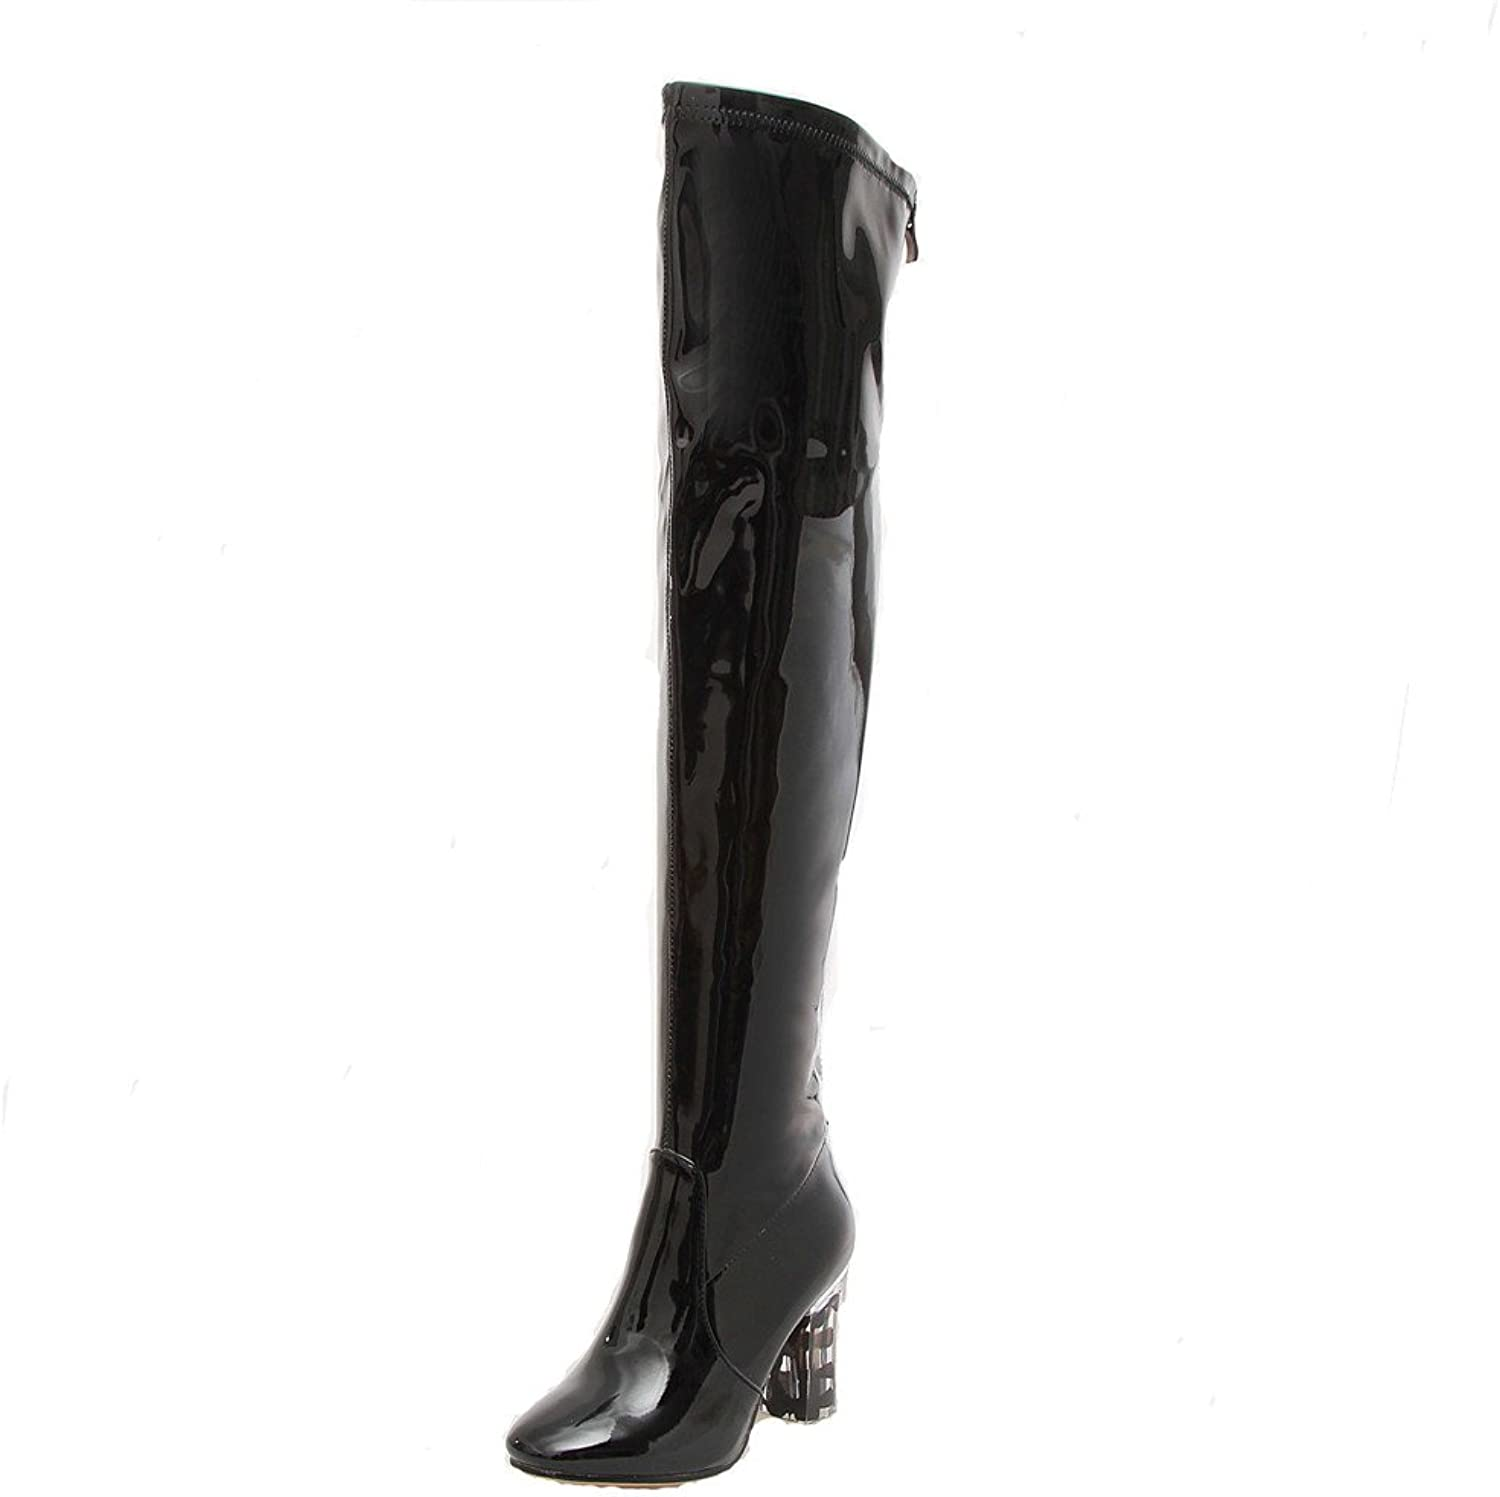 Nine Seven Patent Leather Women's Square Toe Exquisite Chunky Heel Zip Handmade Over The Knee Boot